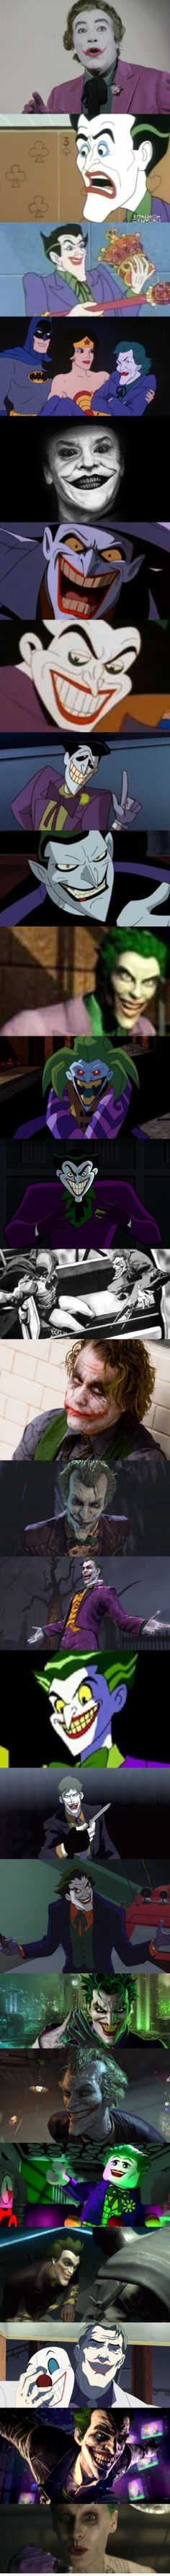 The Joker evolution